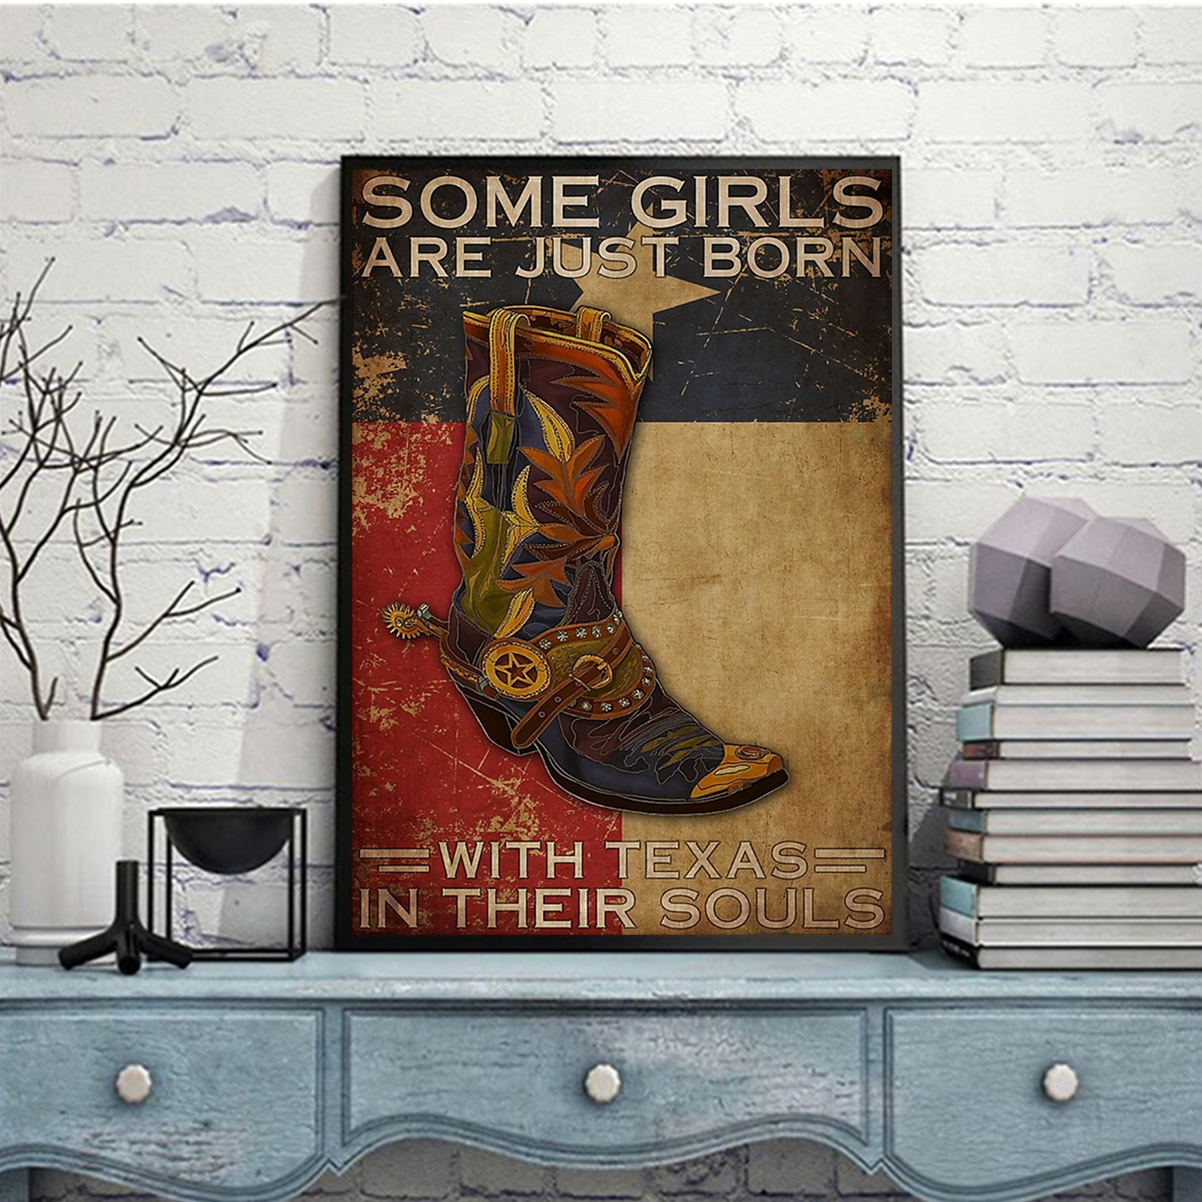 Some girl are just born with texas in their souls poster A2